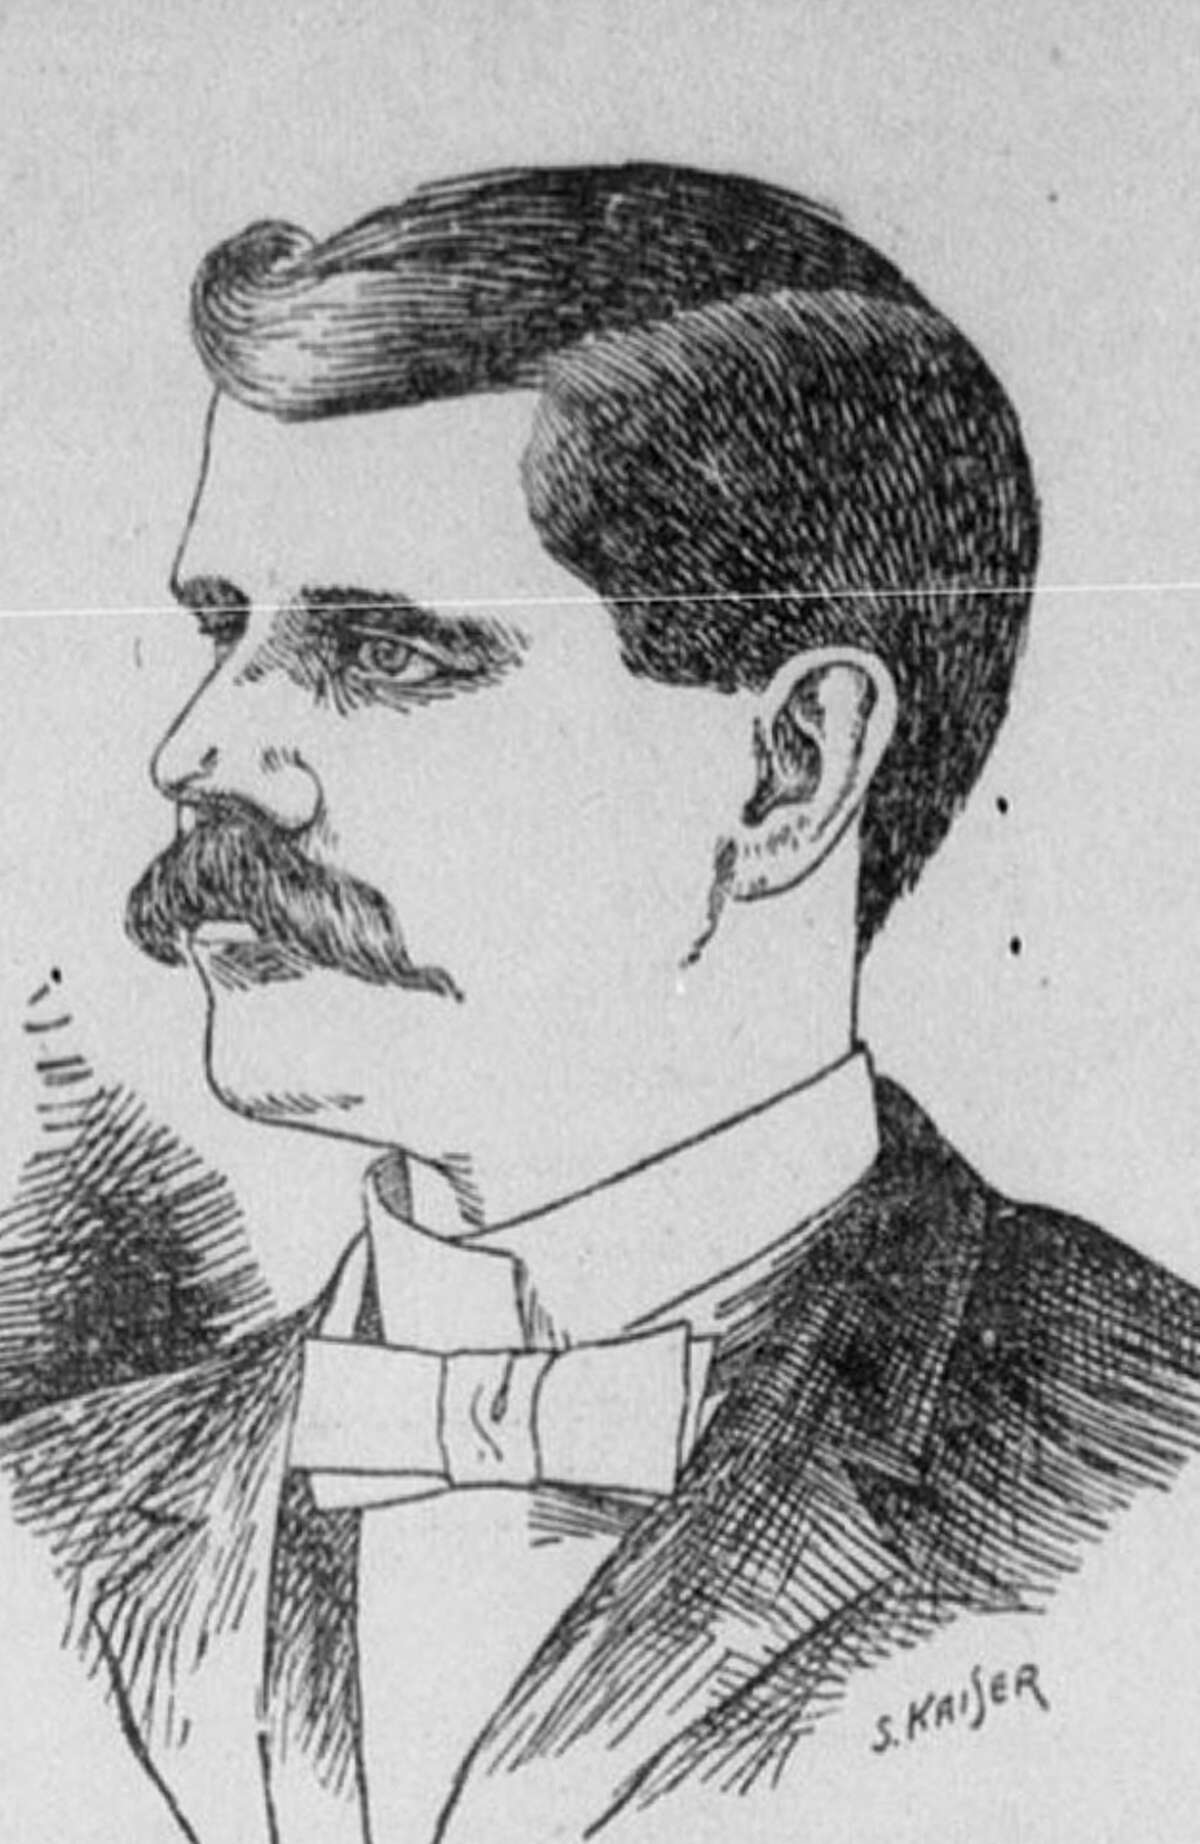 Benjamin Wettermark was a leading citizen of Nacogdoches when he absconded with bank funds in 1903.